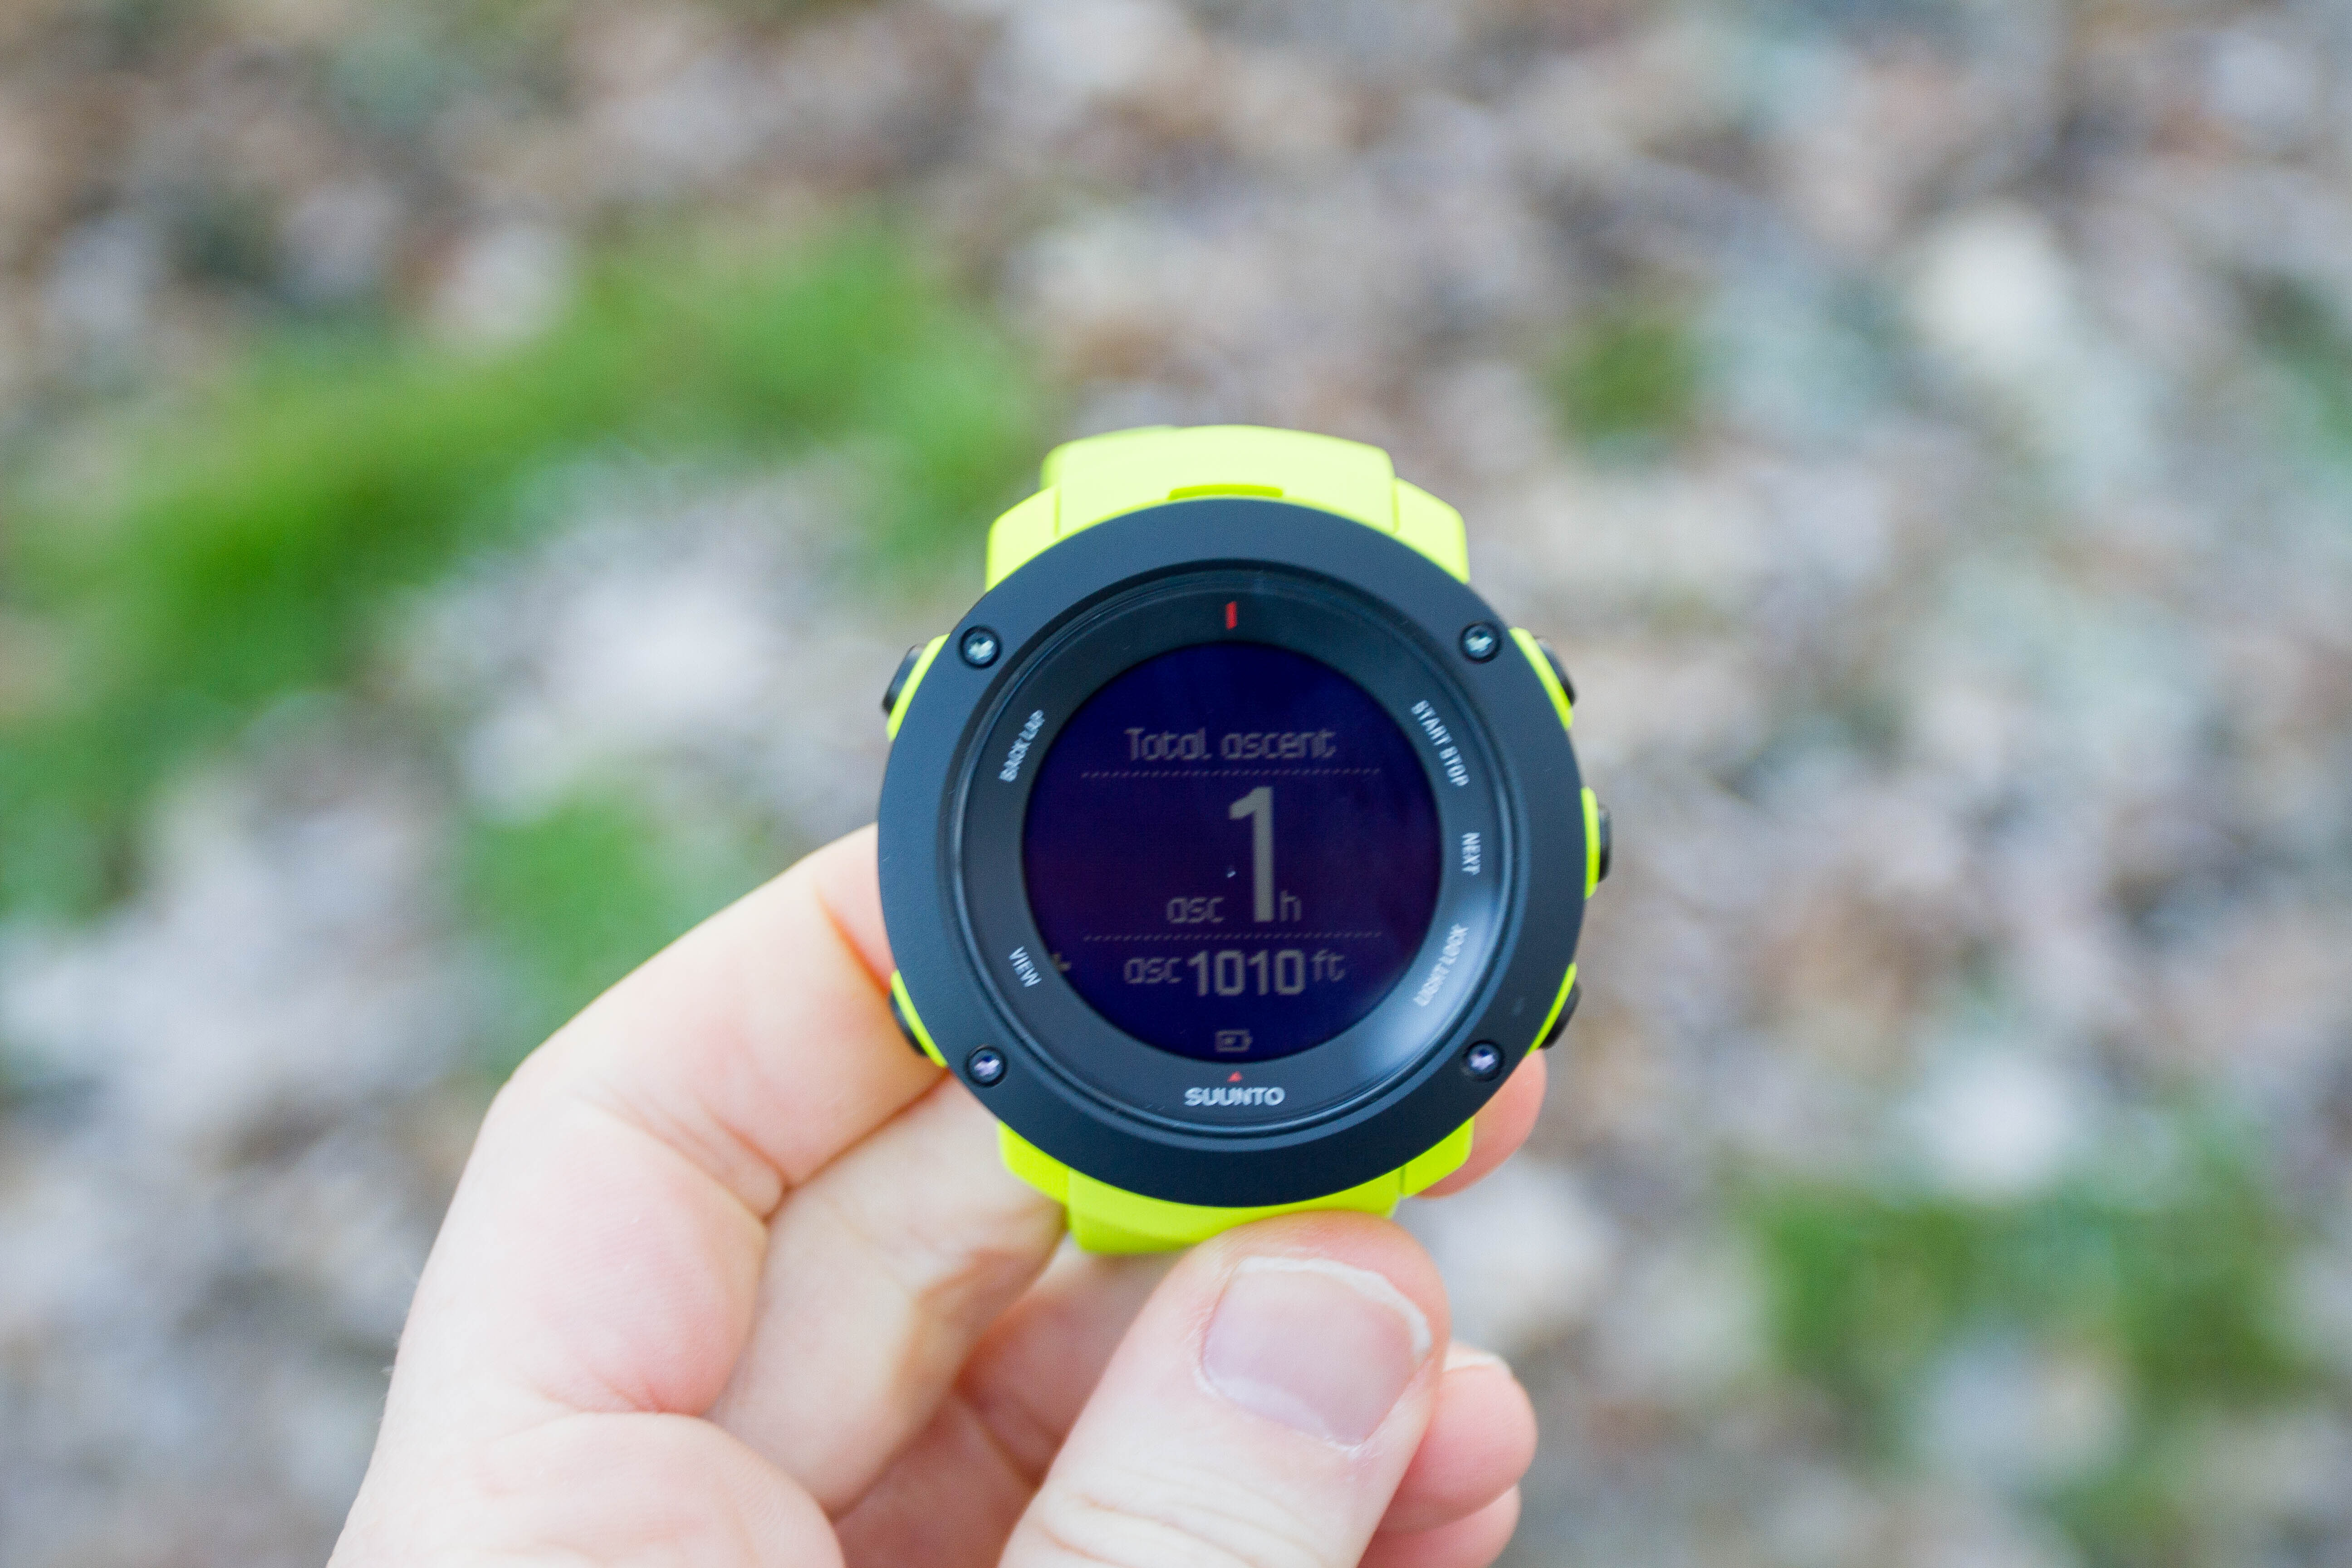 The New Suunto Ambit3 Vertical An Explainer Dc Rainmaker Sport Black Hr Gps Watch For Multisport Says They Havent Decided Yet On What If Any Of Features Might Be Added To Existing Units Heres A Quick Gallery Different